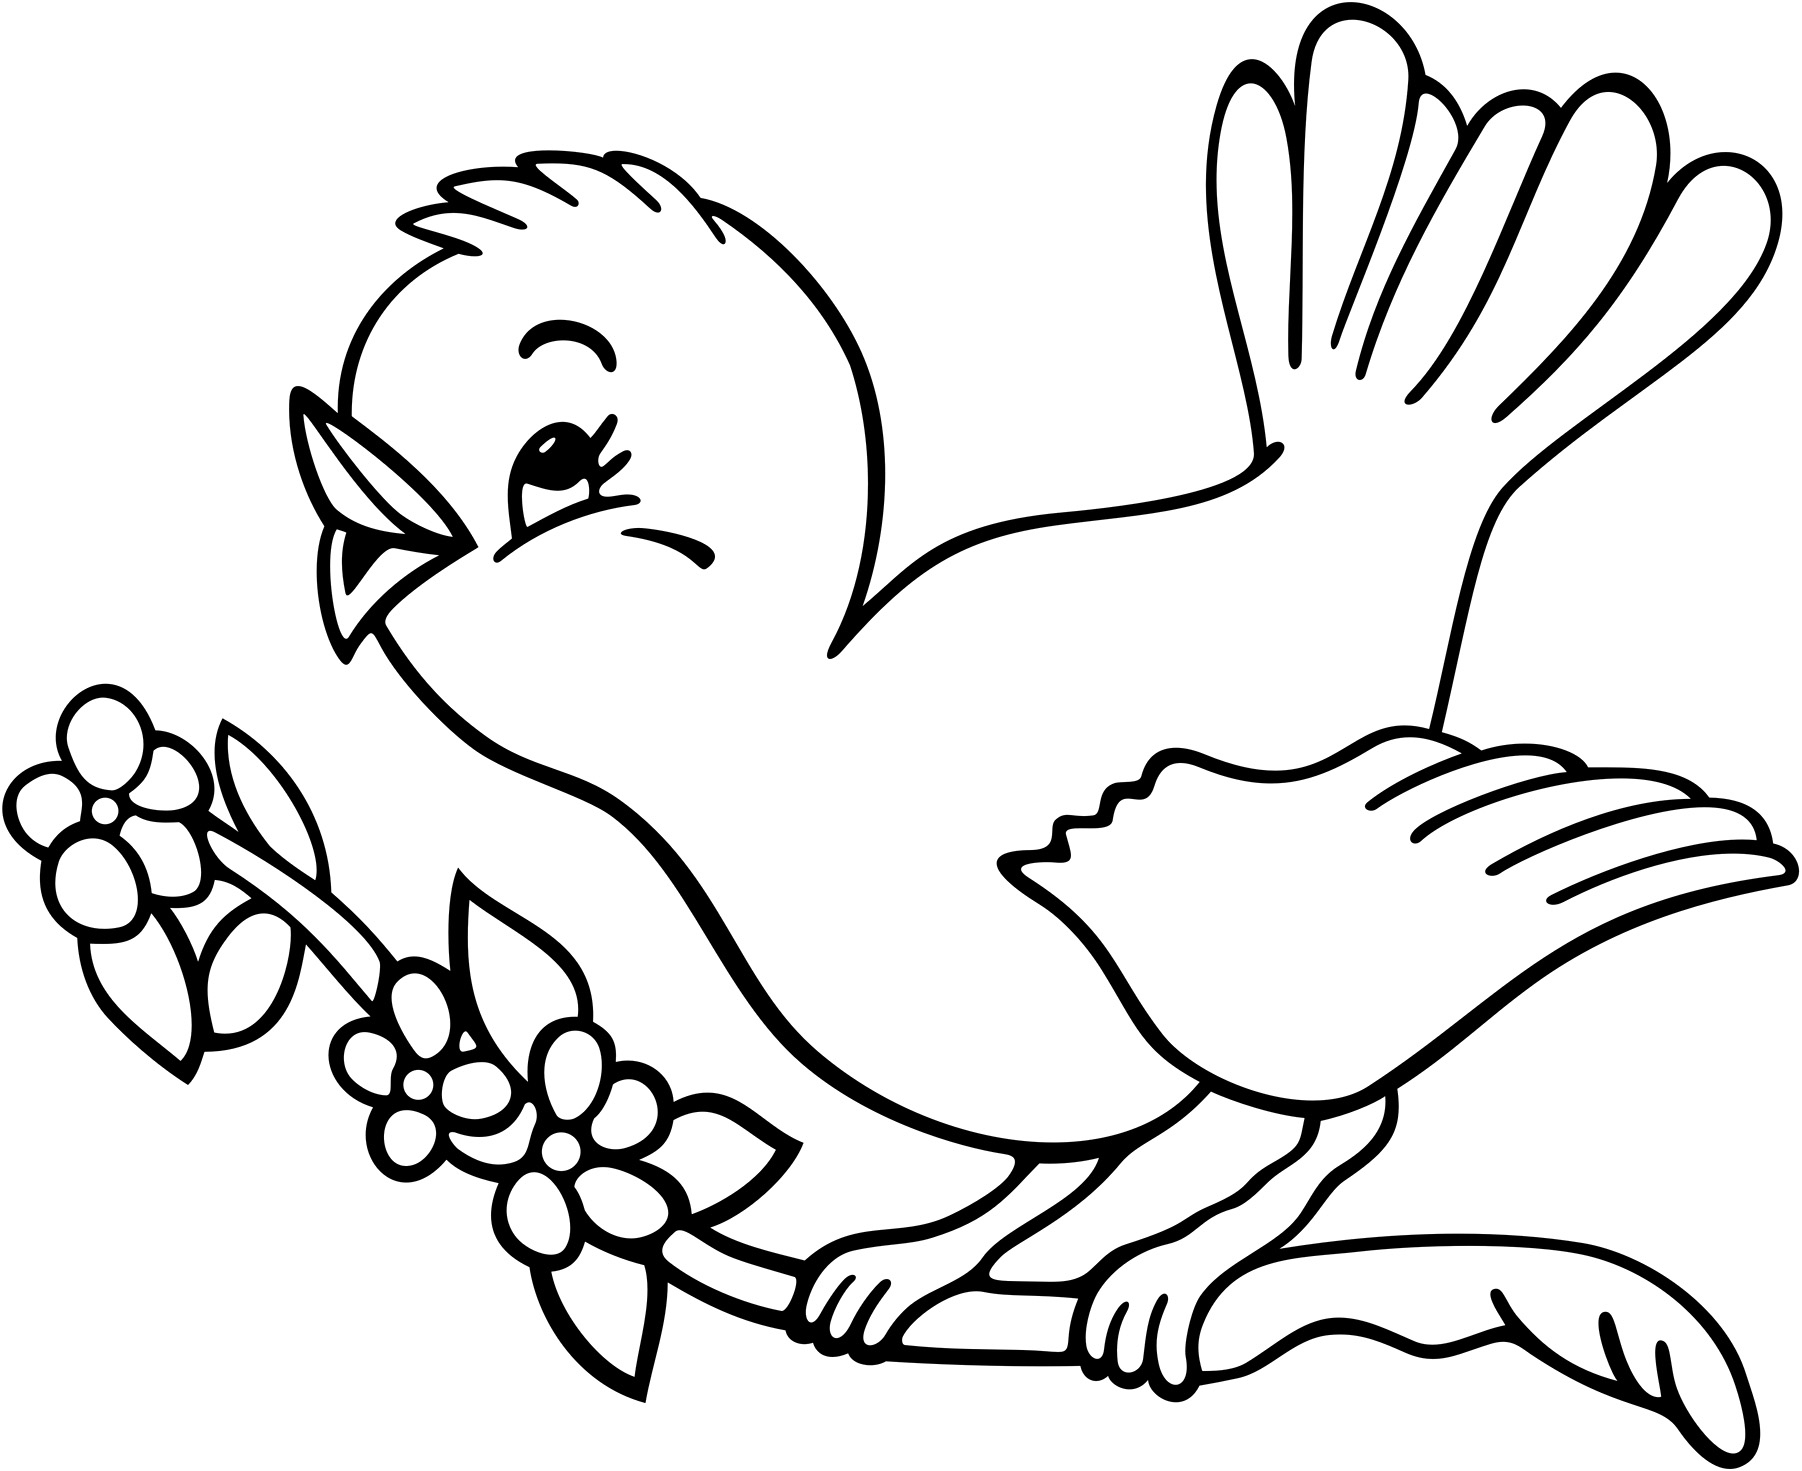 1802x1471 Coloring Page Of Puppy Cat Sparrow Bird Dog Booth Clover To Print